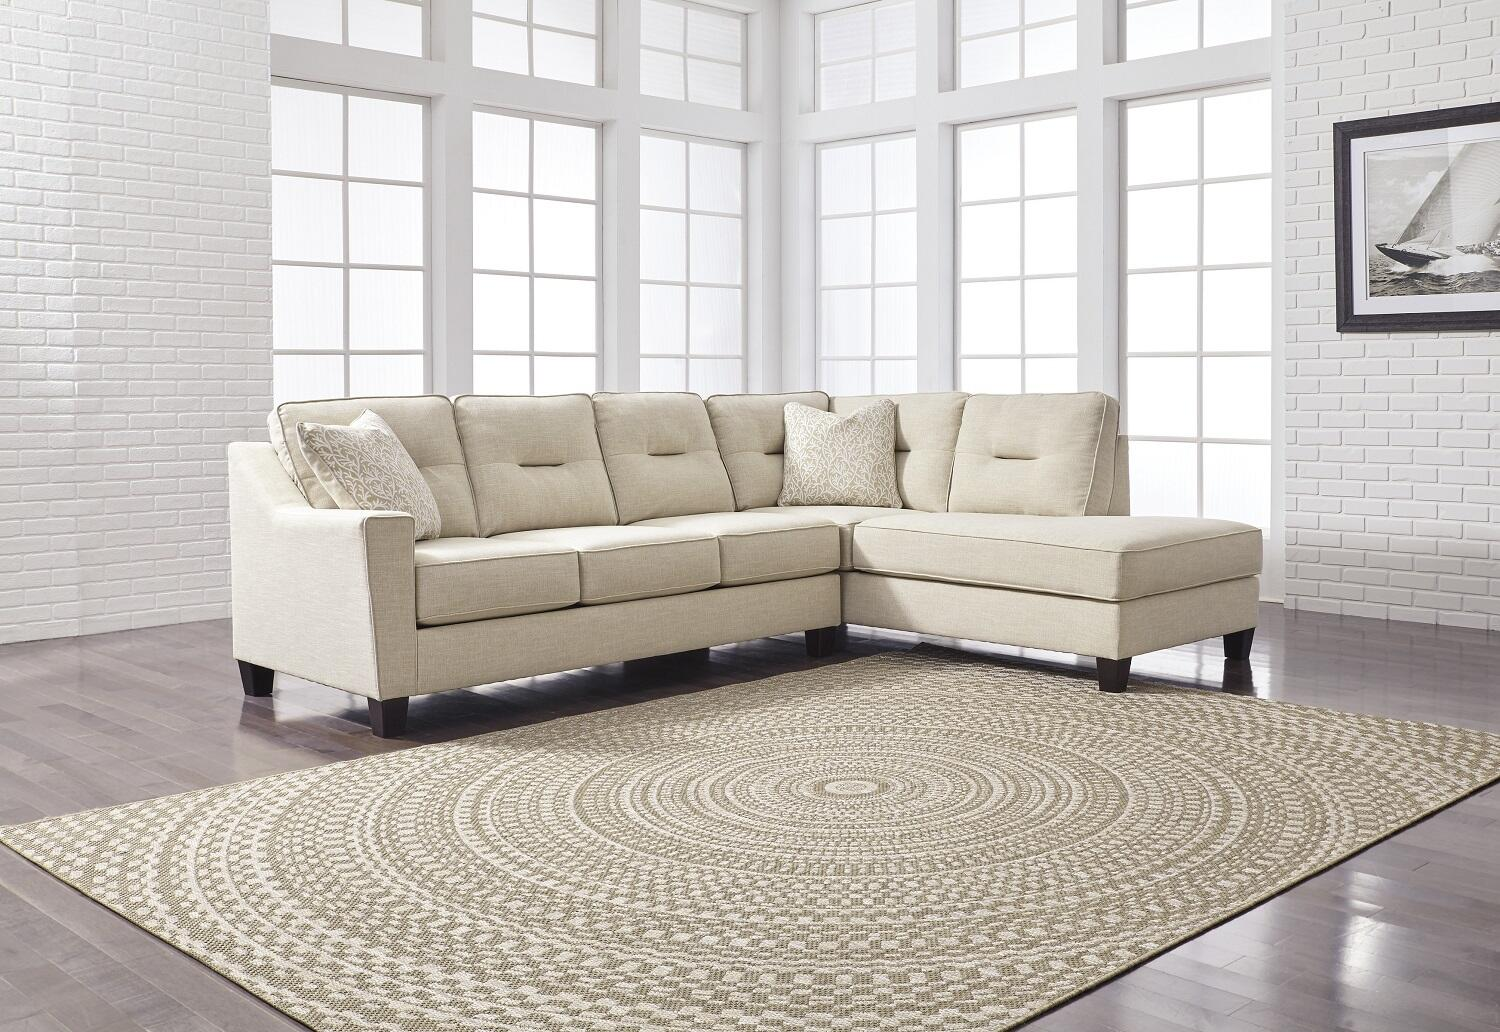 milo corner sofa groupon review victorian word for italia mi20906617sand connor series and chaise